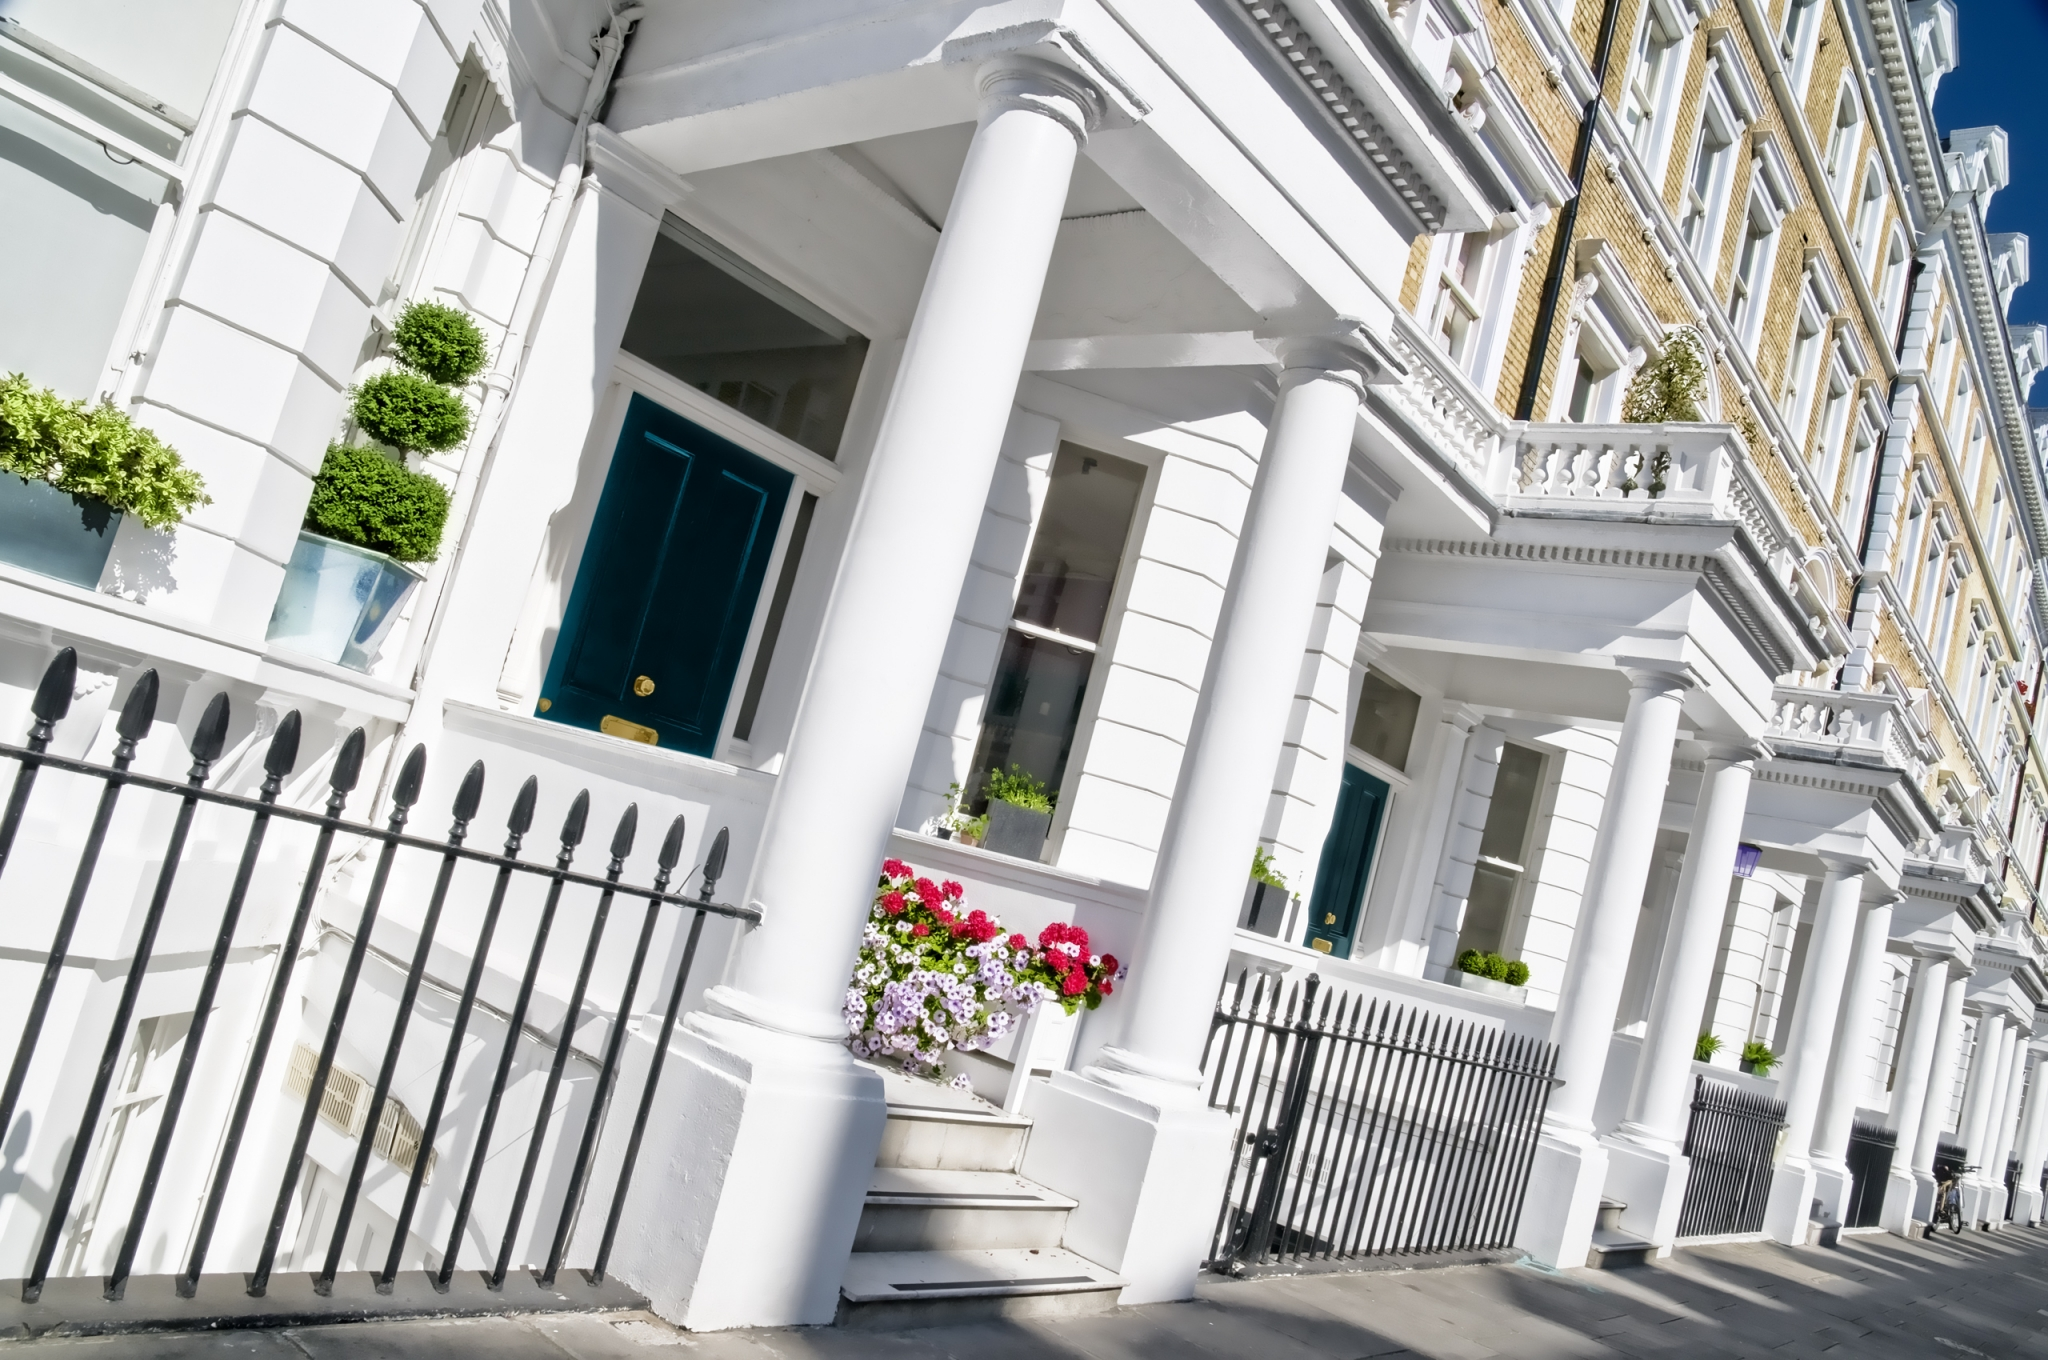 Current news on the London property market